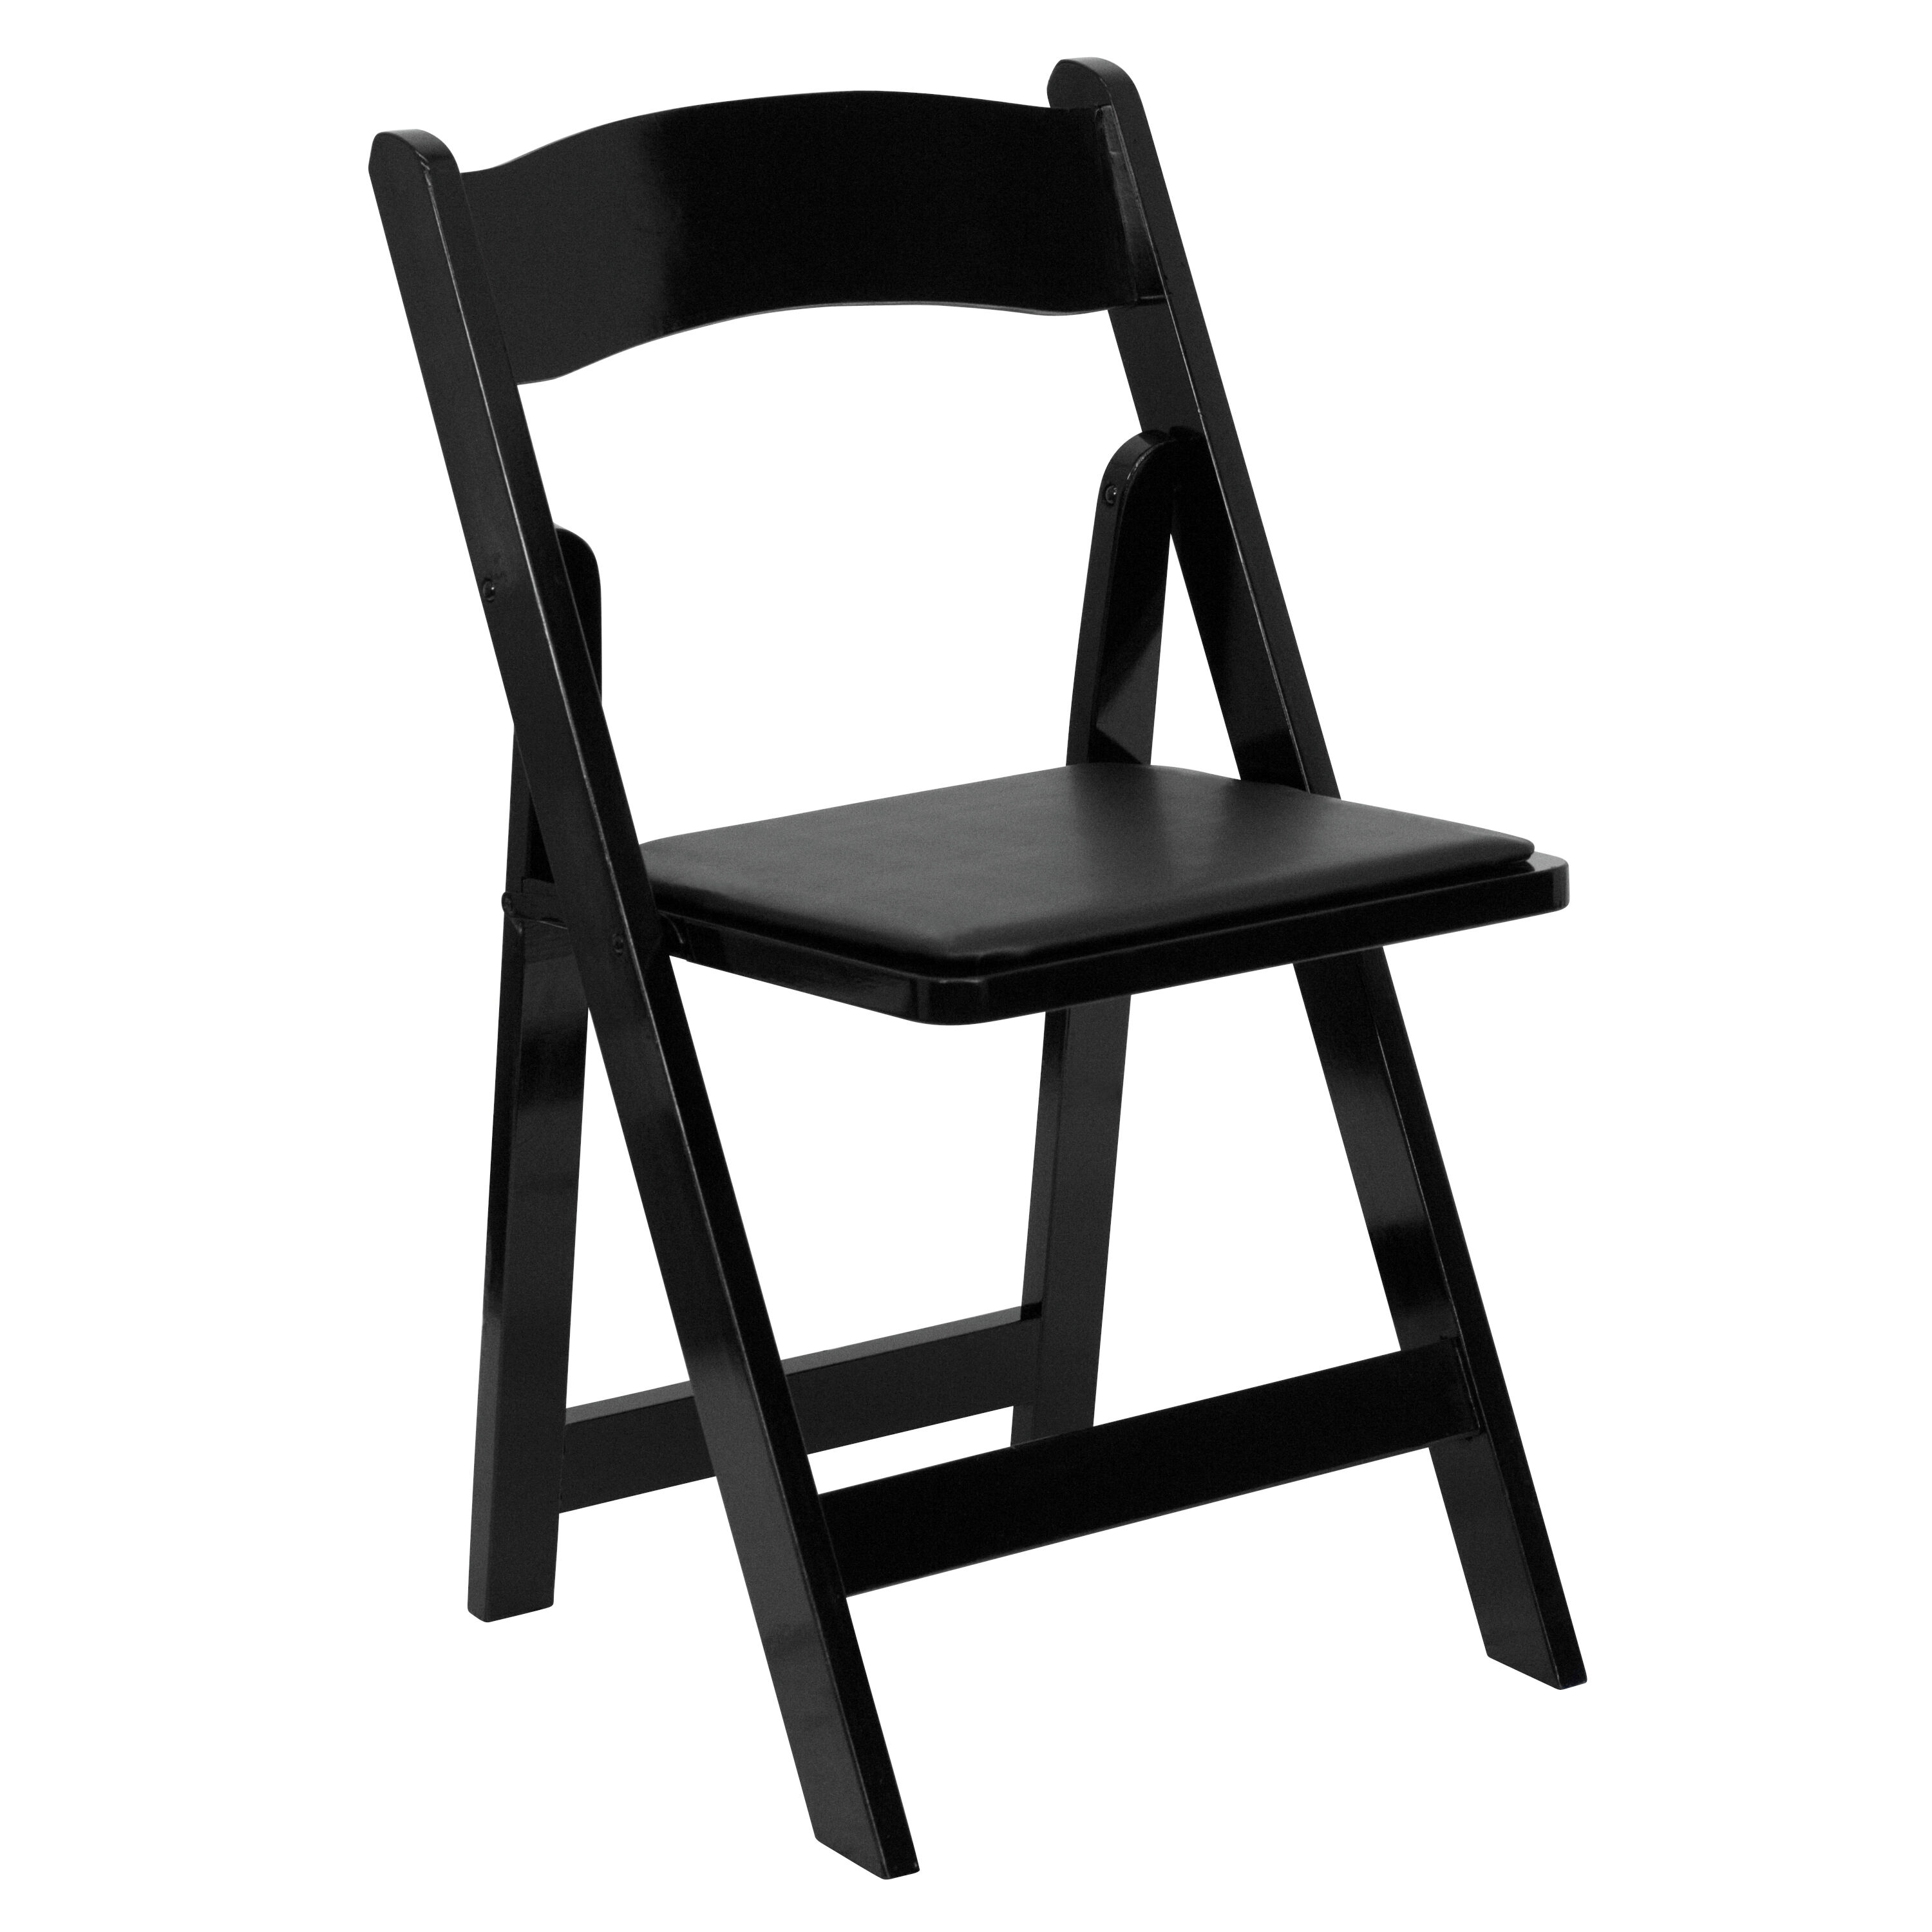 folding chair vinyl padded black floor with back support philippines wood xf 2902 bk gg